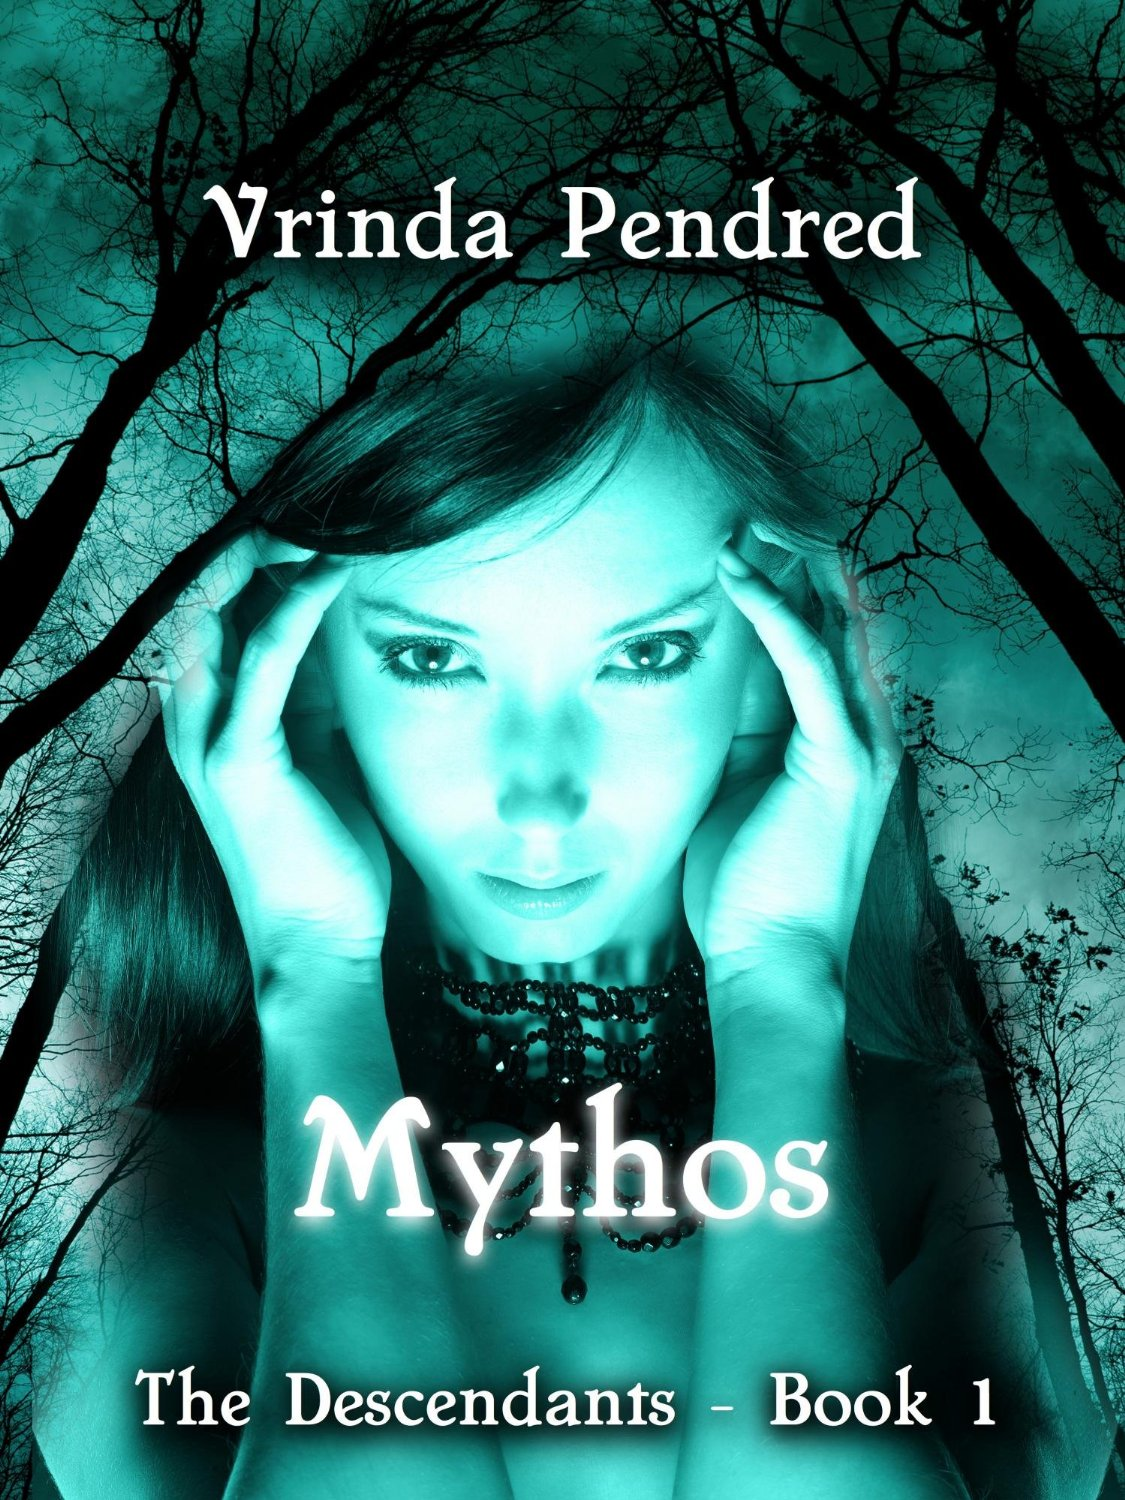 Review of Mythos (The Descendants Series)